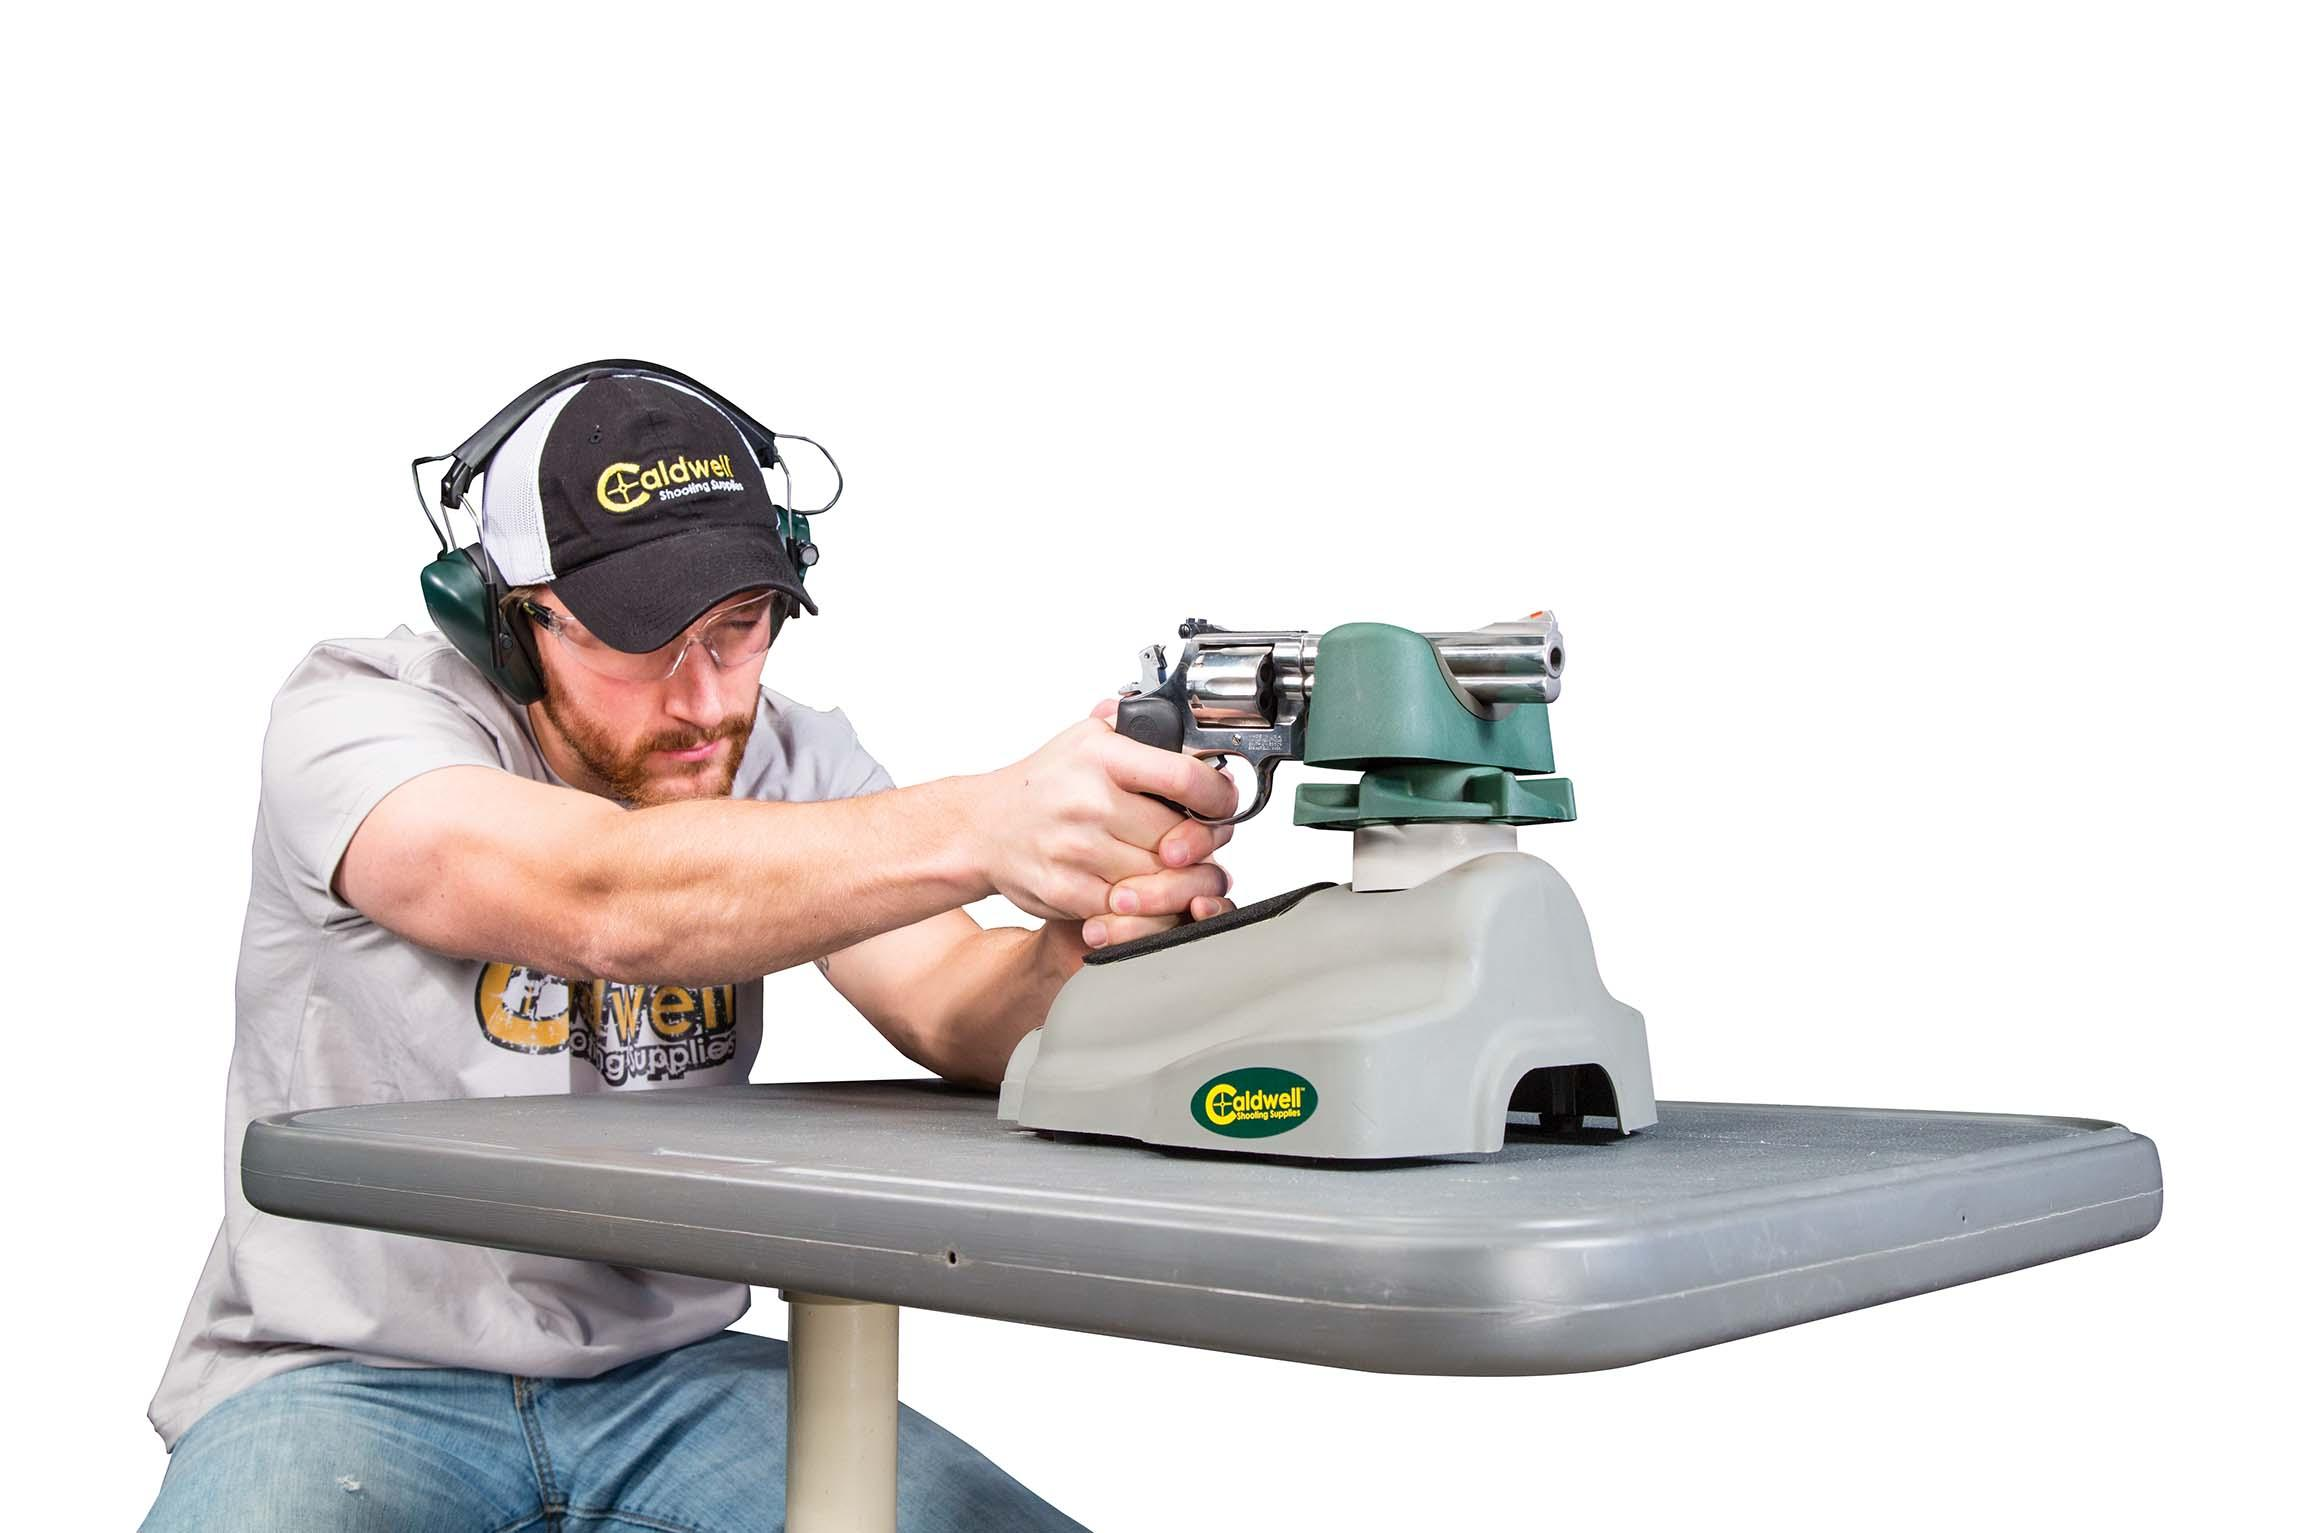 Shooting Material: Rifle Rest Shooting Bench Pistol Duty Sighting Practice